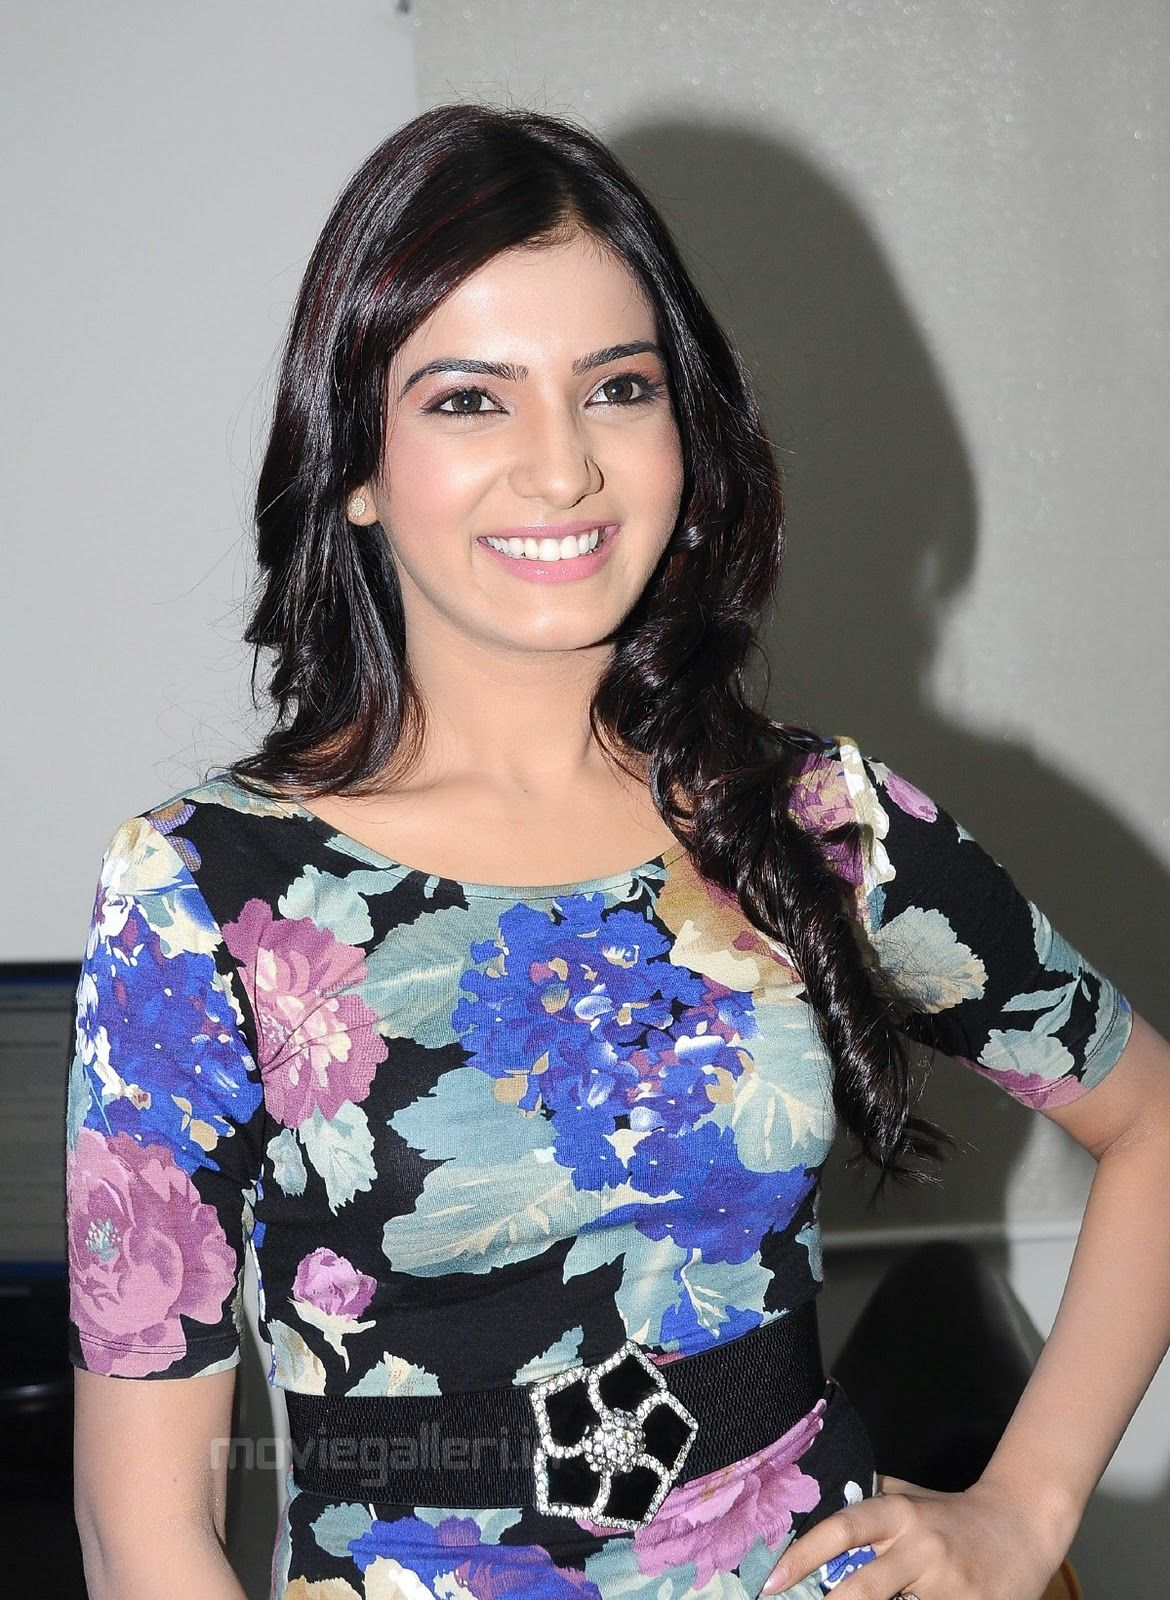 samantha latest photos photo of | hd wallpapers | pinterest | latest